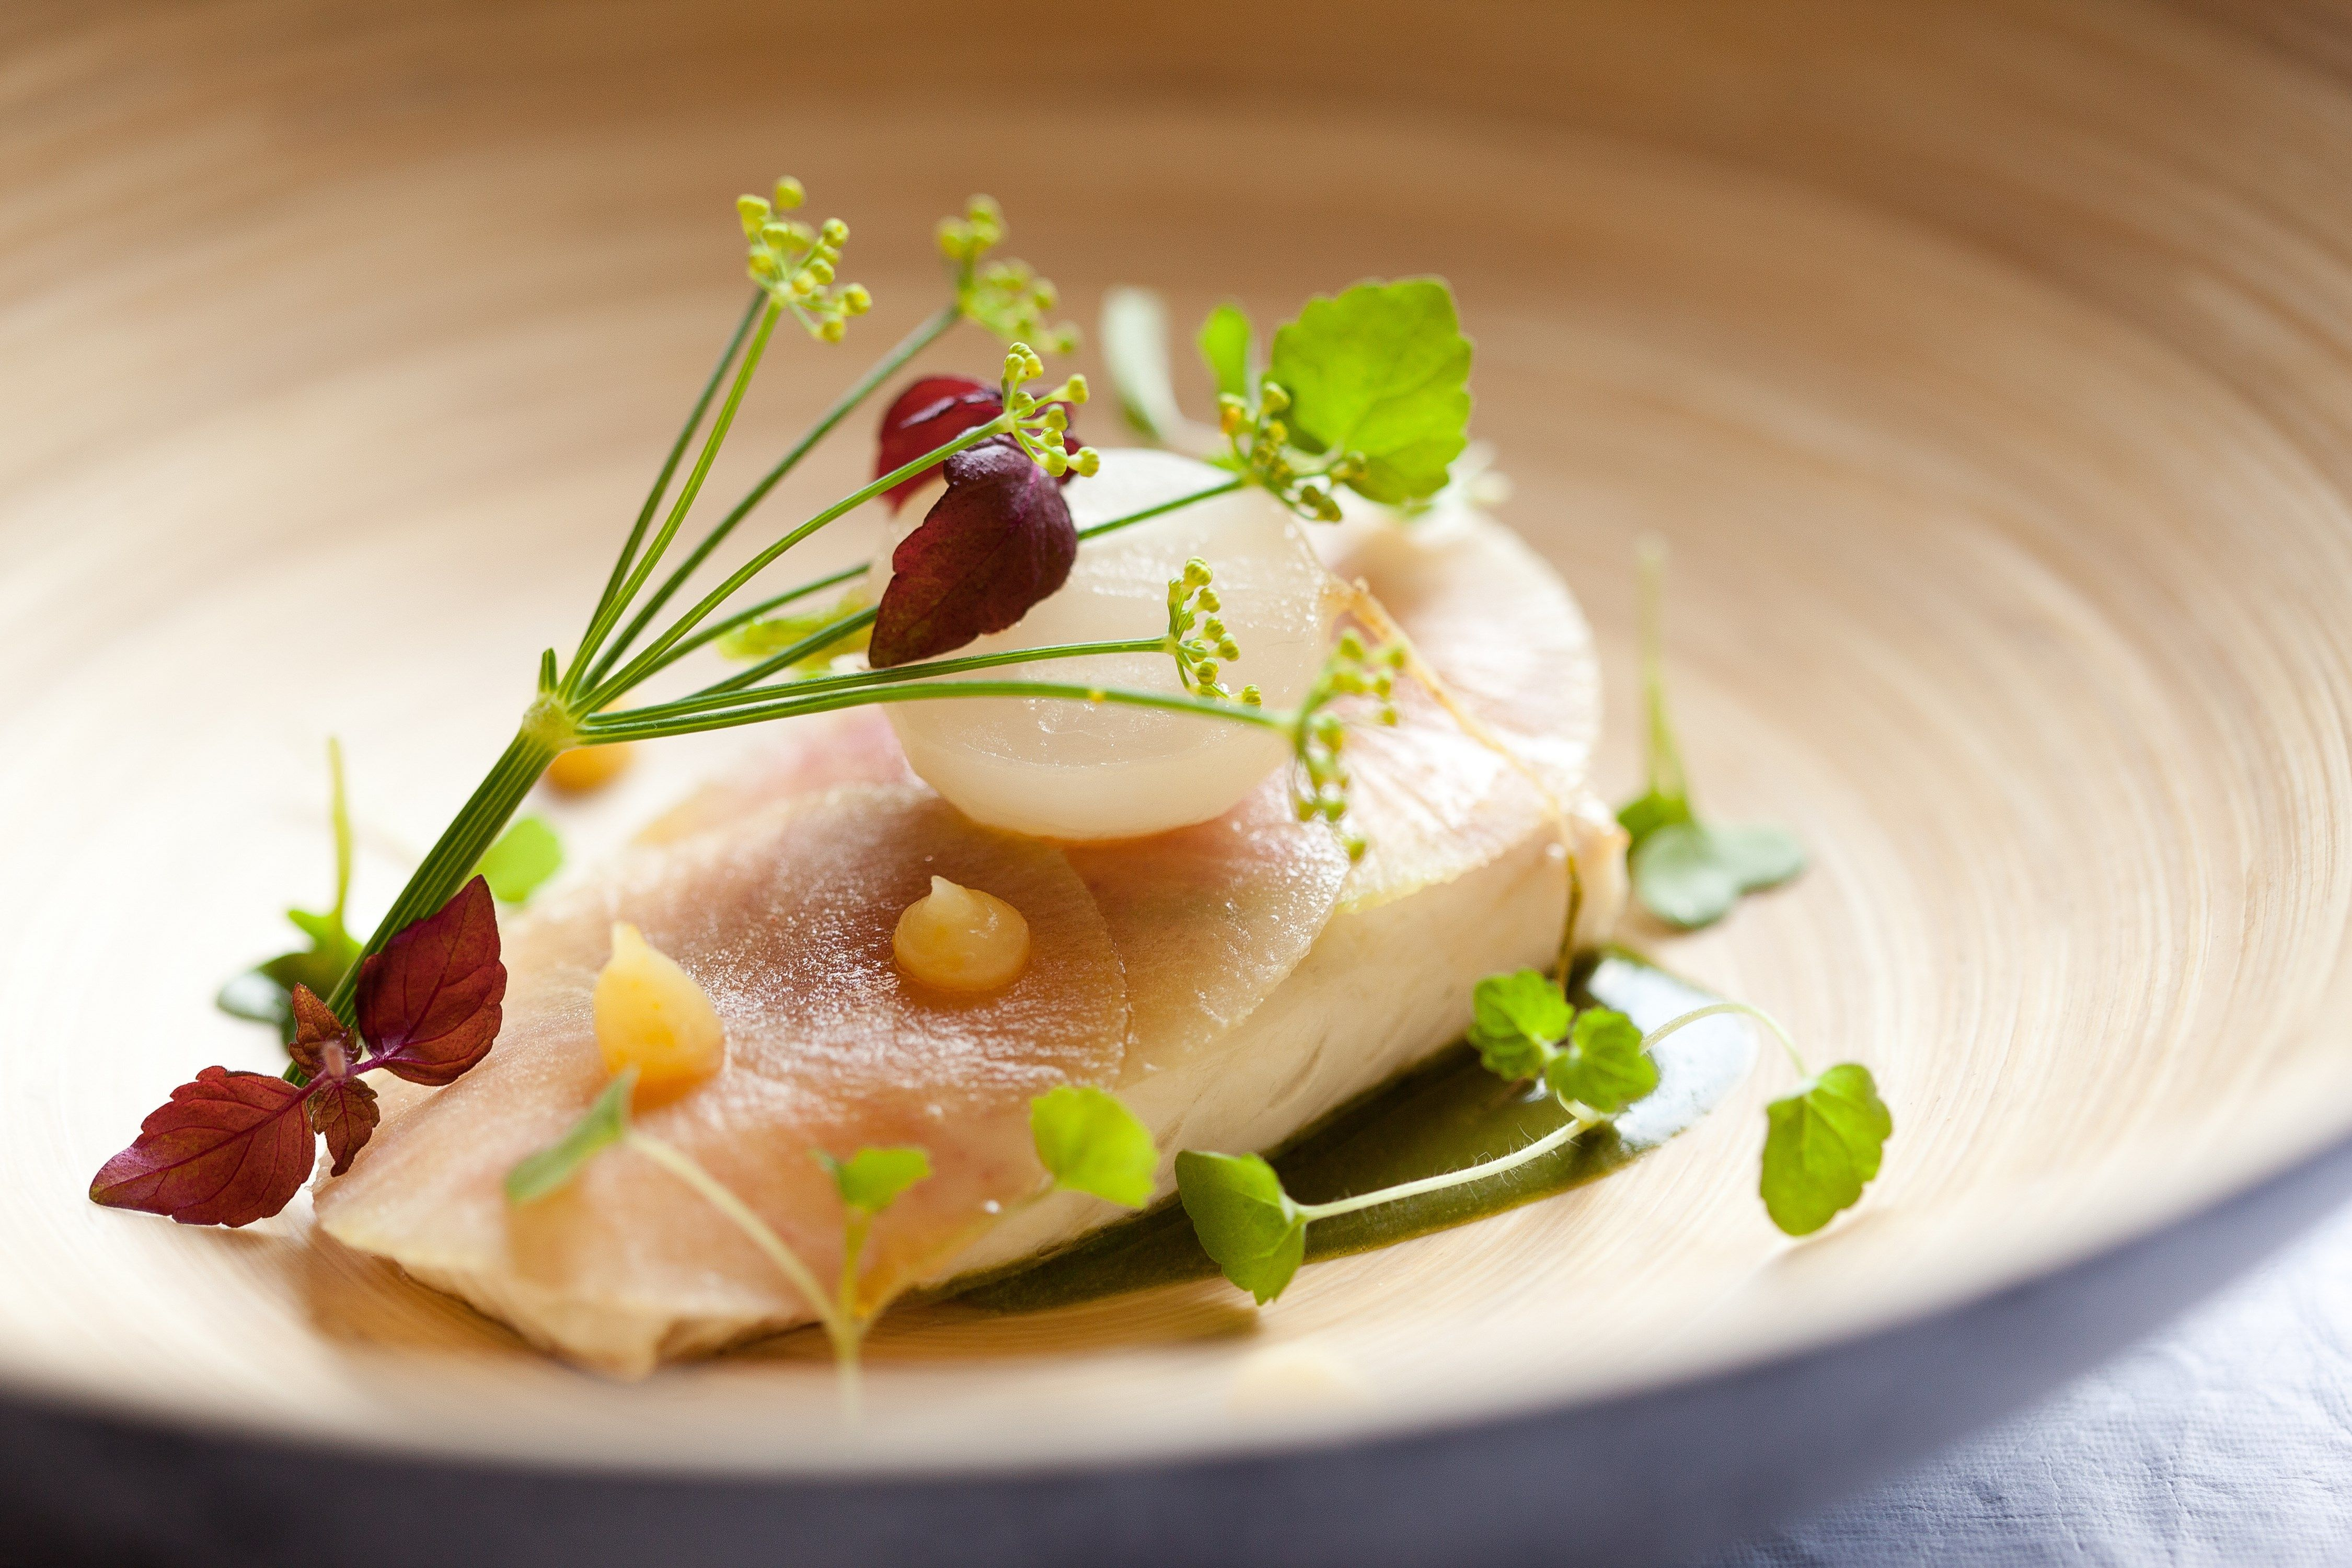 Turbot Navet Infusion D Herbes Sauvages Westminster C Thai Toutain Gastronomie Cuisibe Poisson Luxe Presentation Alimentaire Gastronomie Alimentation